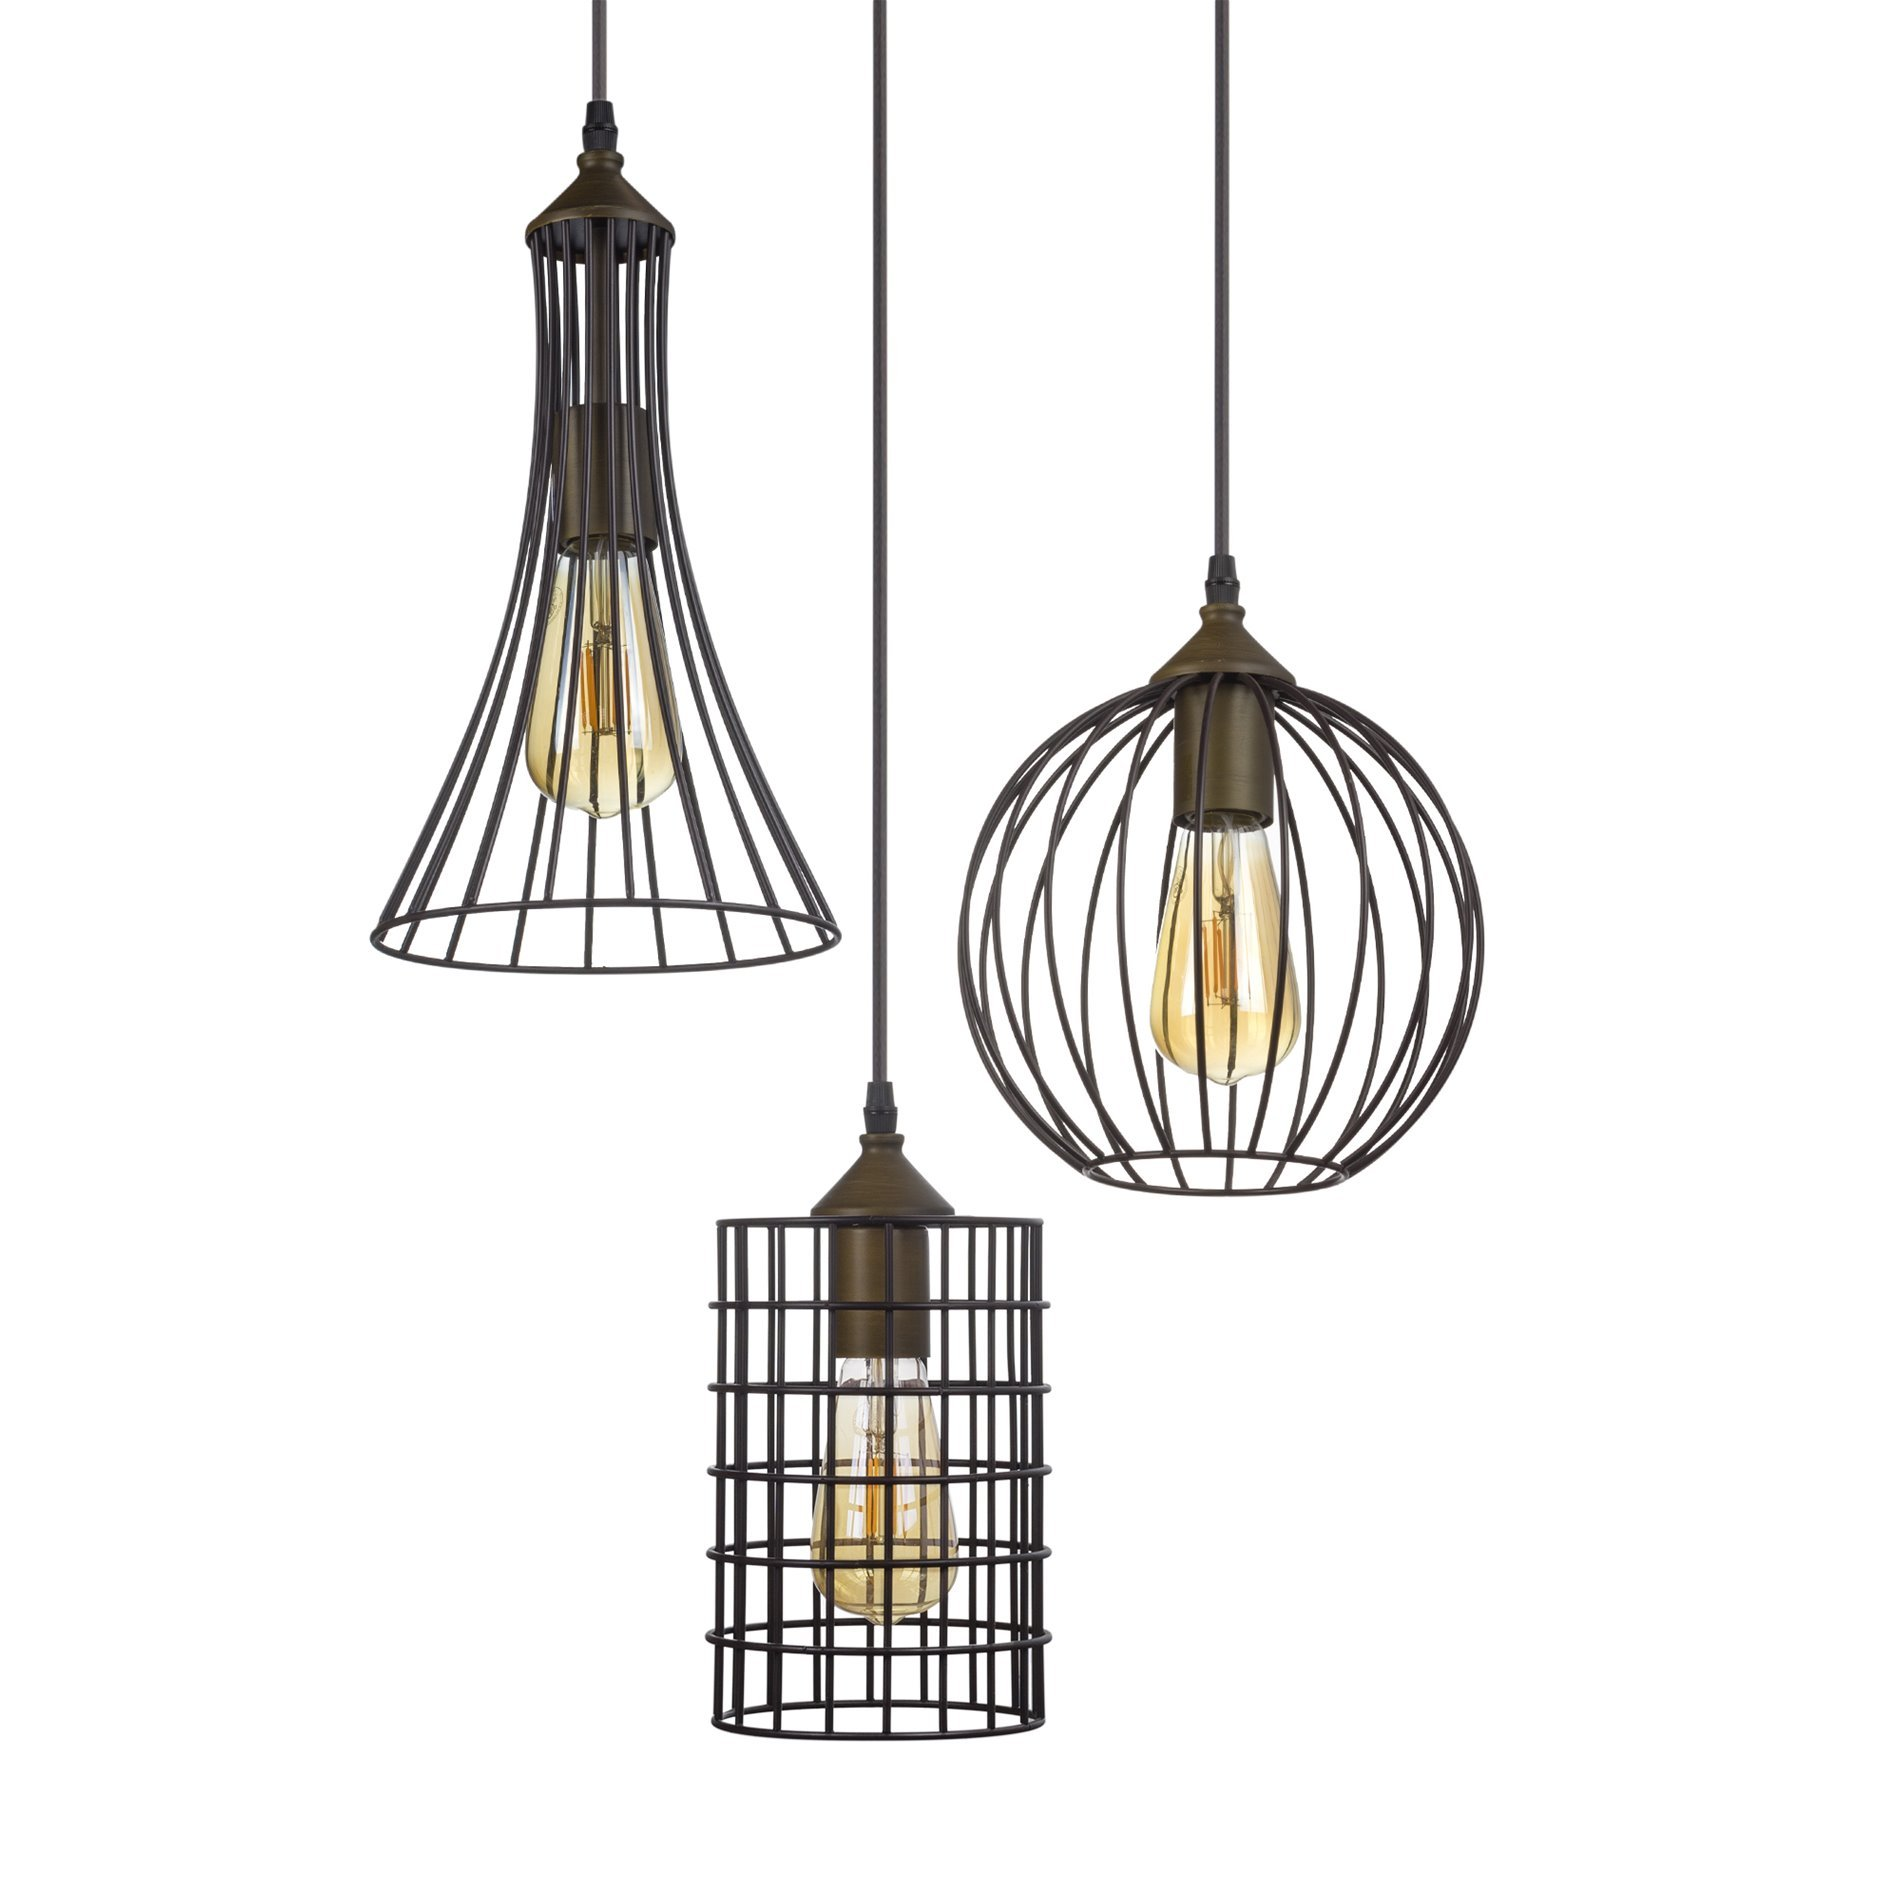 Kira Home Wyatt 11.5'' Rustic Industrial 3-Light Multi-Pendant Chandelier + Metal Shades, Cage Design, Adjustable Wire, Oil-Rubbed Bronze Finish